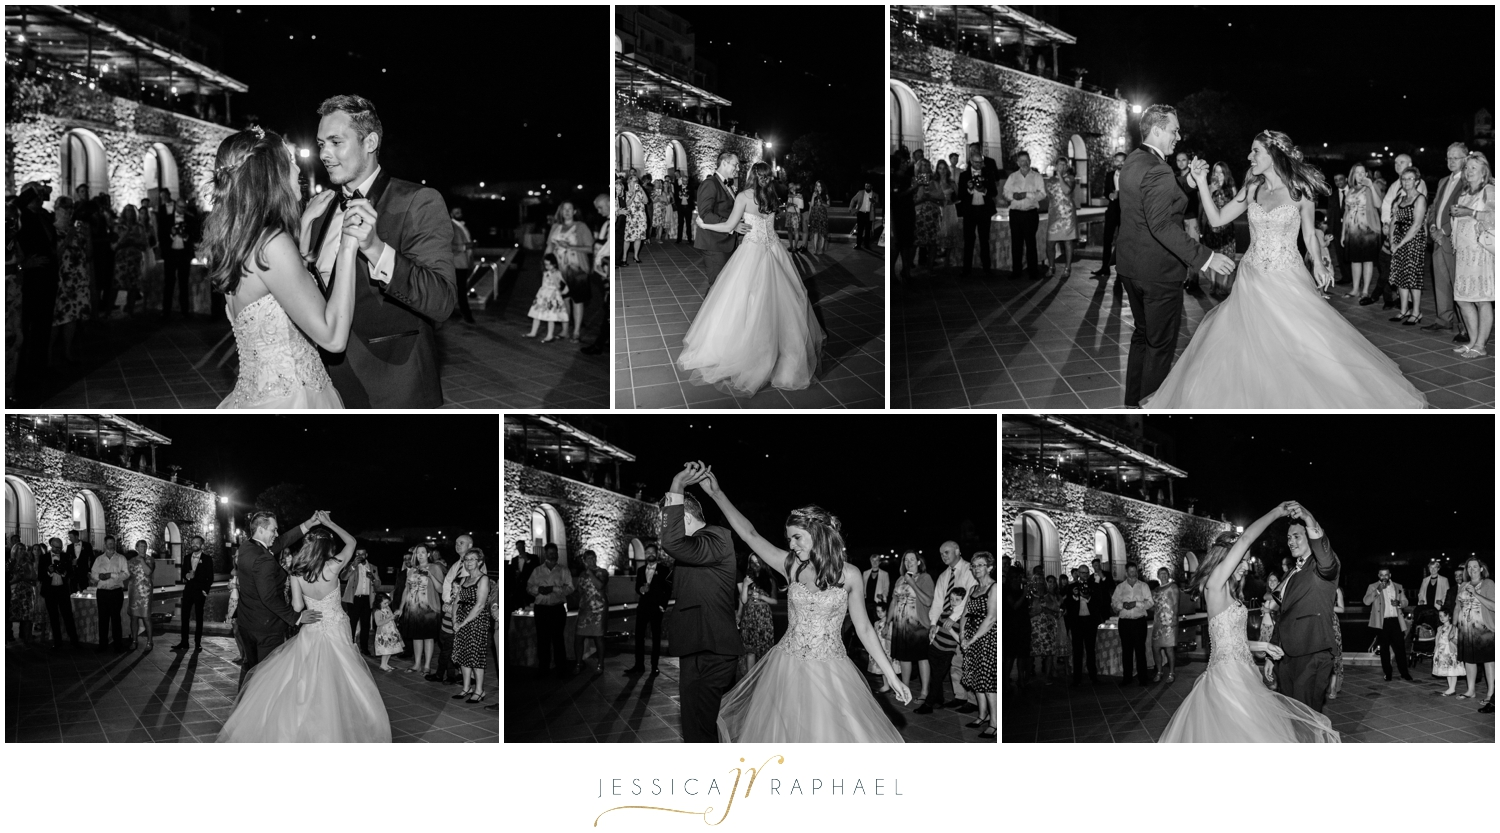 jessica-raphael-photography-destination-wedding-photographer-destination-weddings-amalfi-coast-weddings-ravello-italy-wedding-sant-eustachio-scala